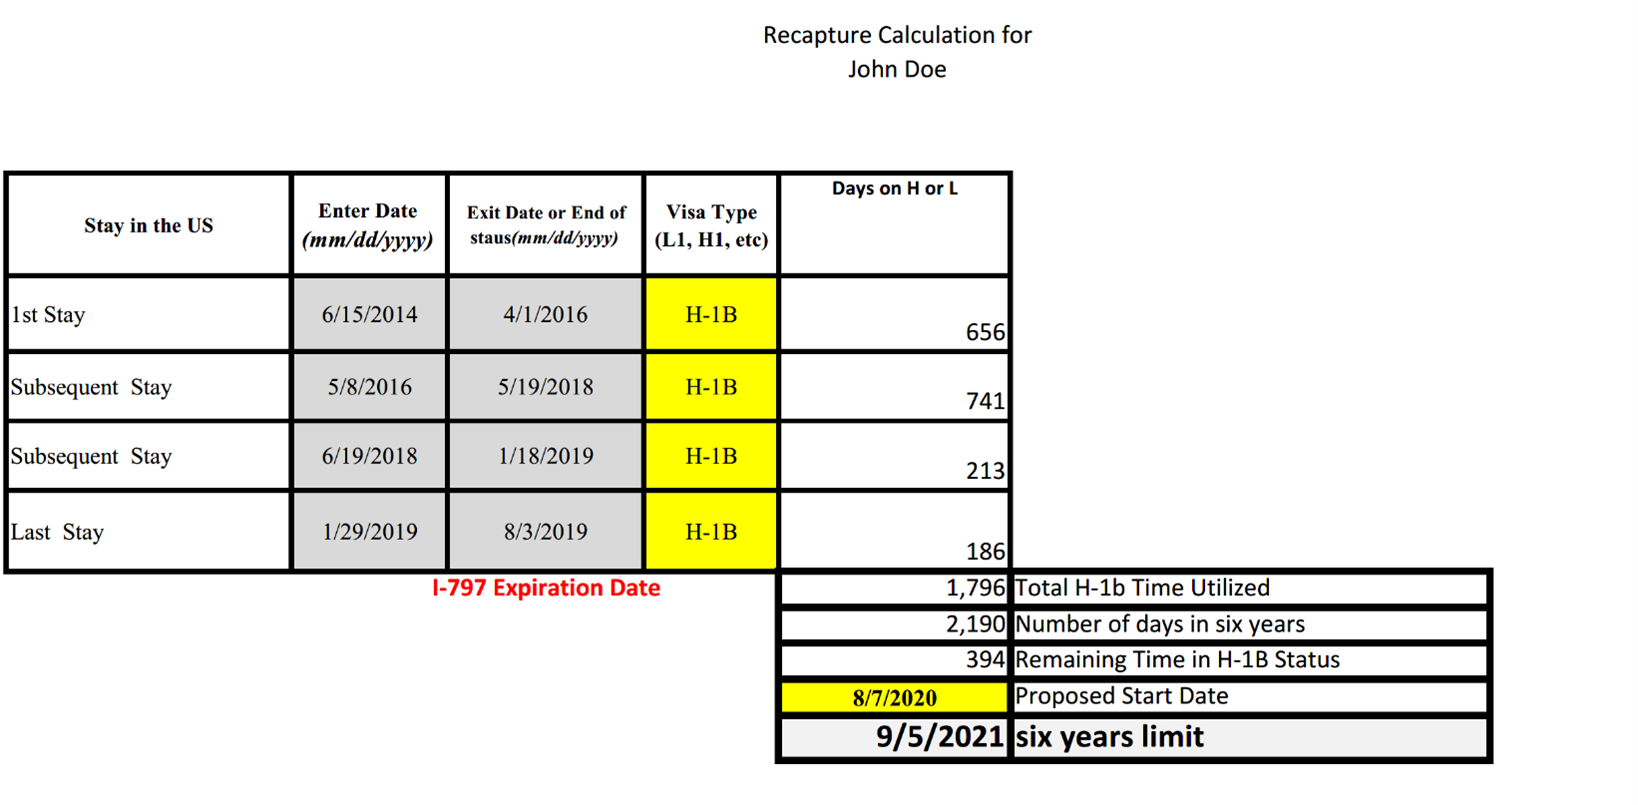 Chart of H-1B unused time recapture calculation.